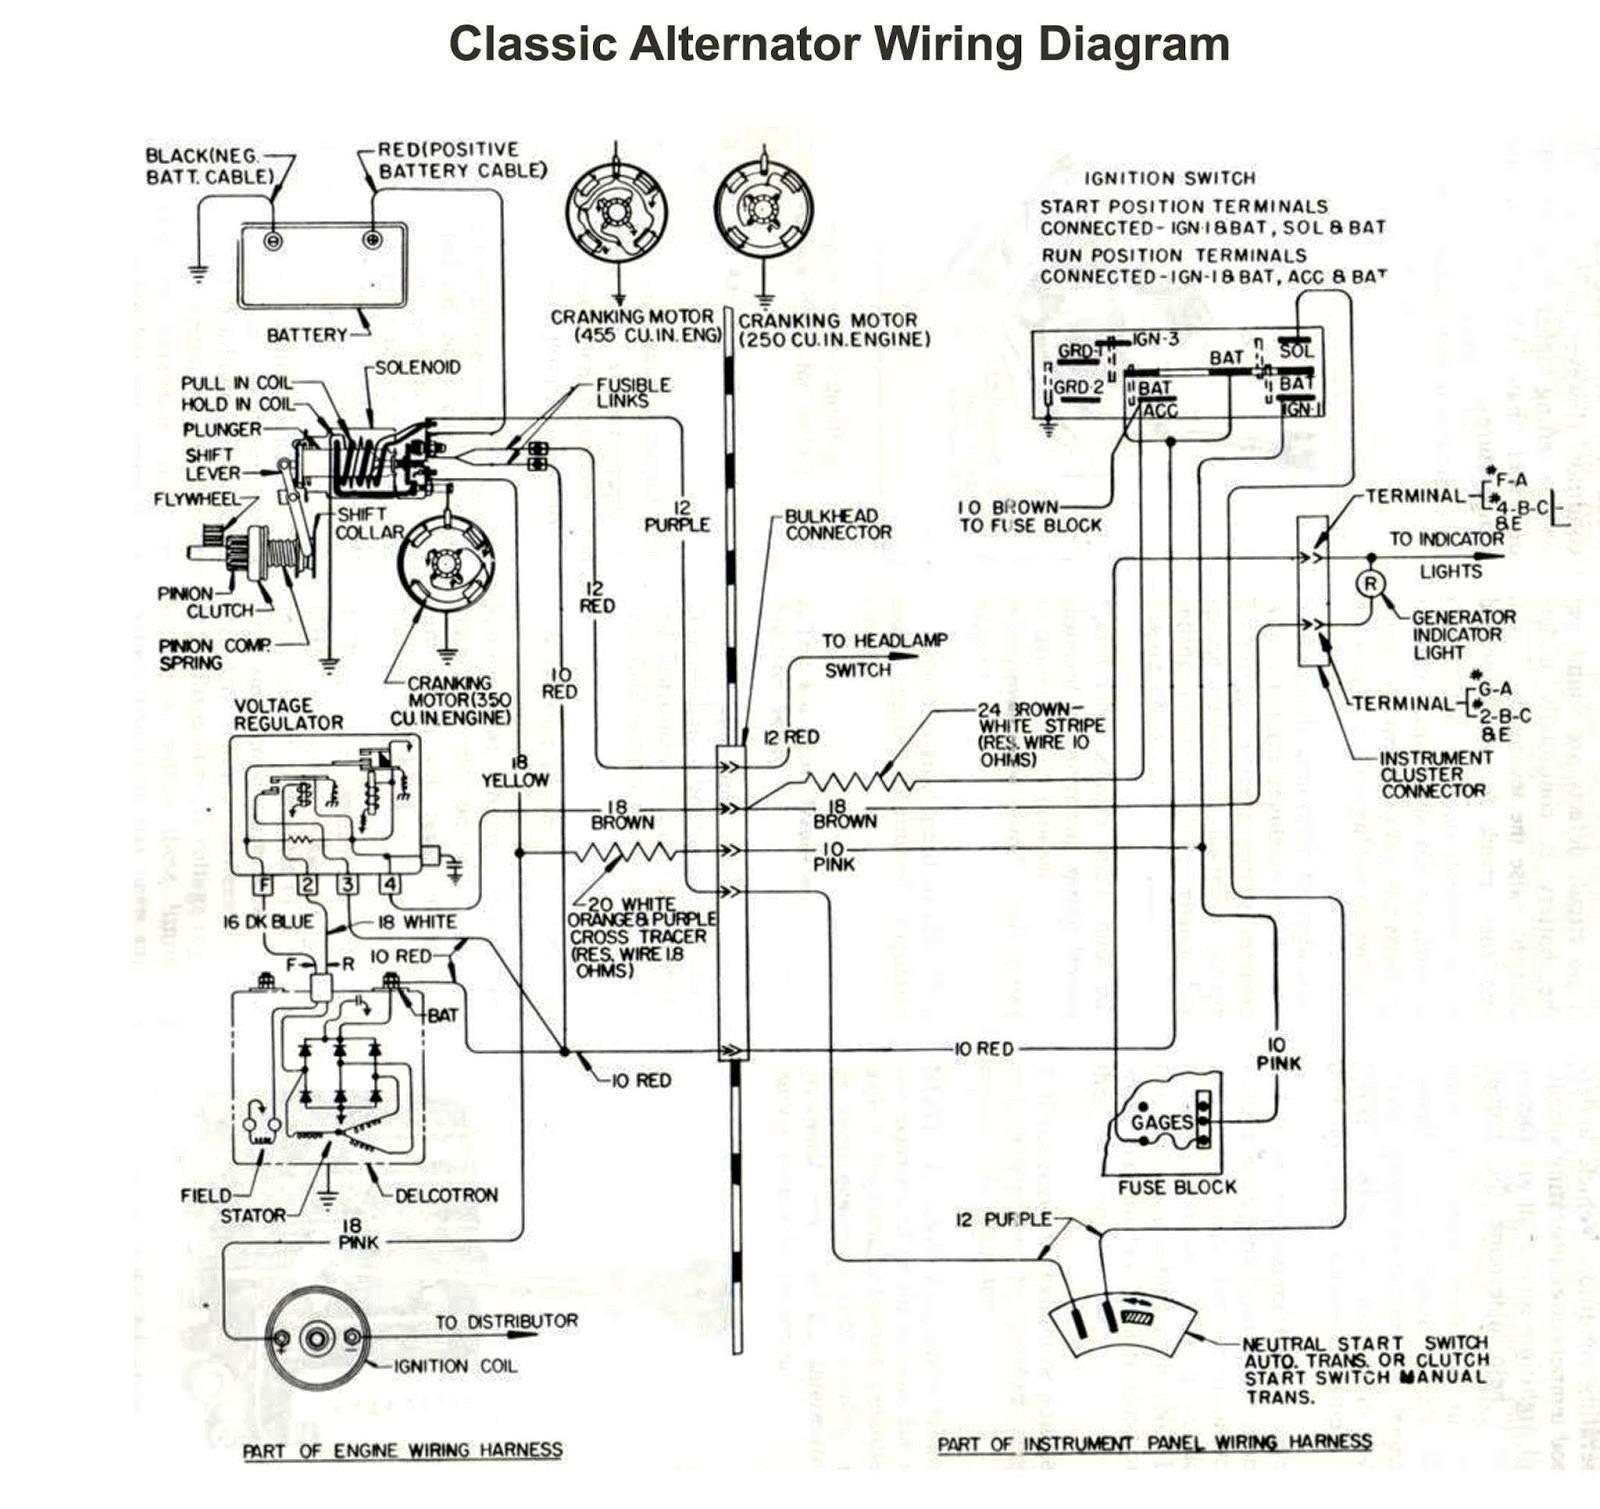 Car Alternator Wiring Diagram Ponent Car Alternator Schematic ford Mustang July Electrical Of Car Alternator Wiring Diagram